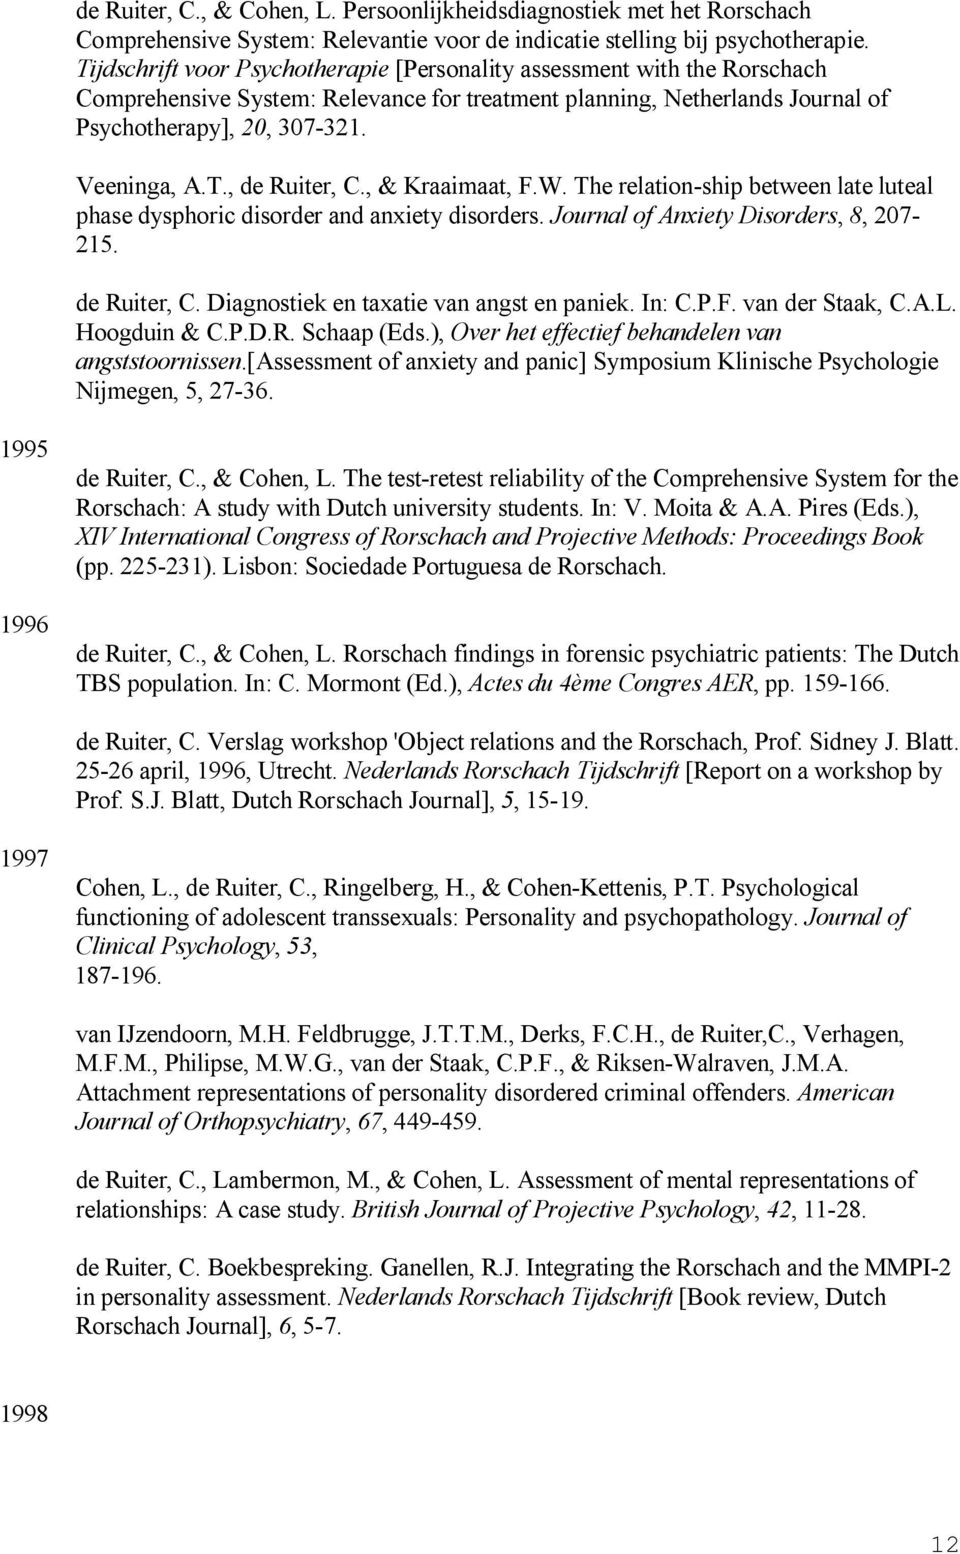 british journal of psychology pdf